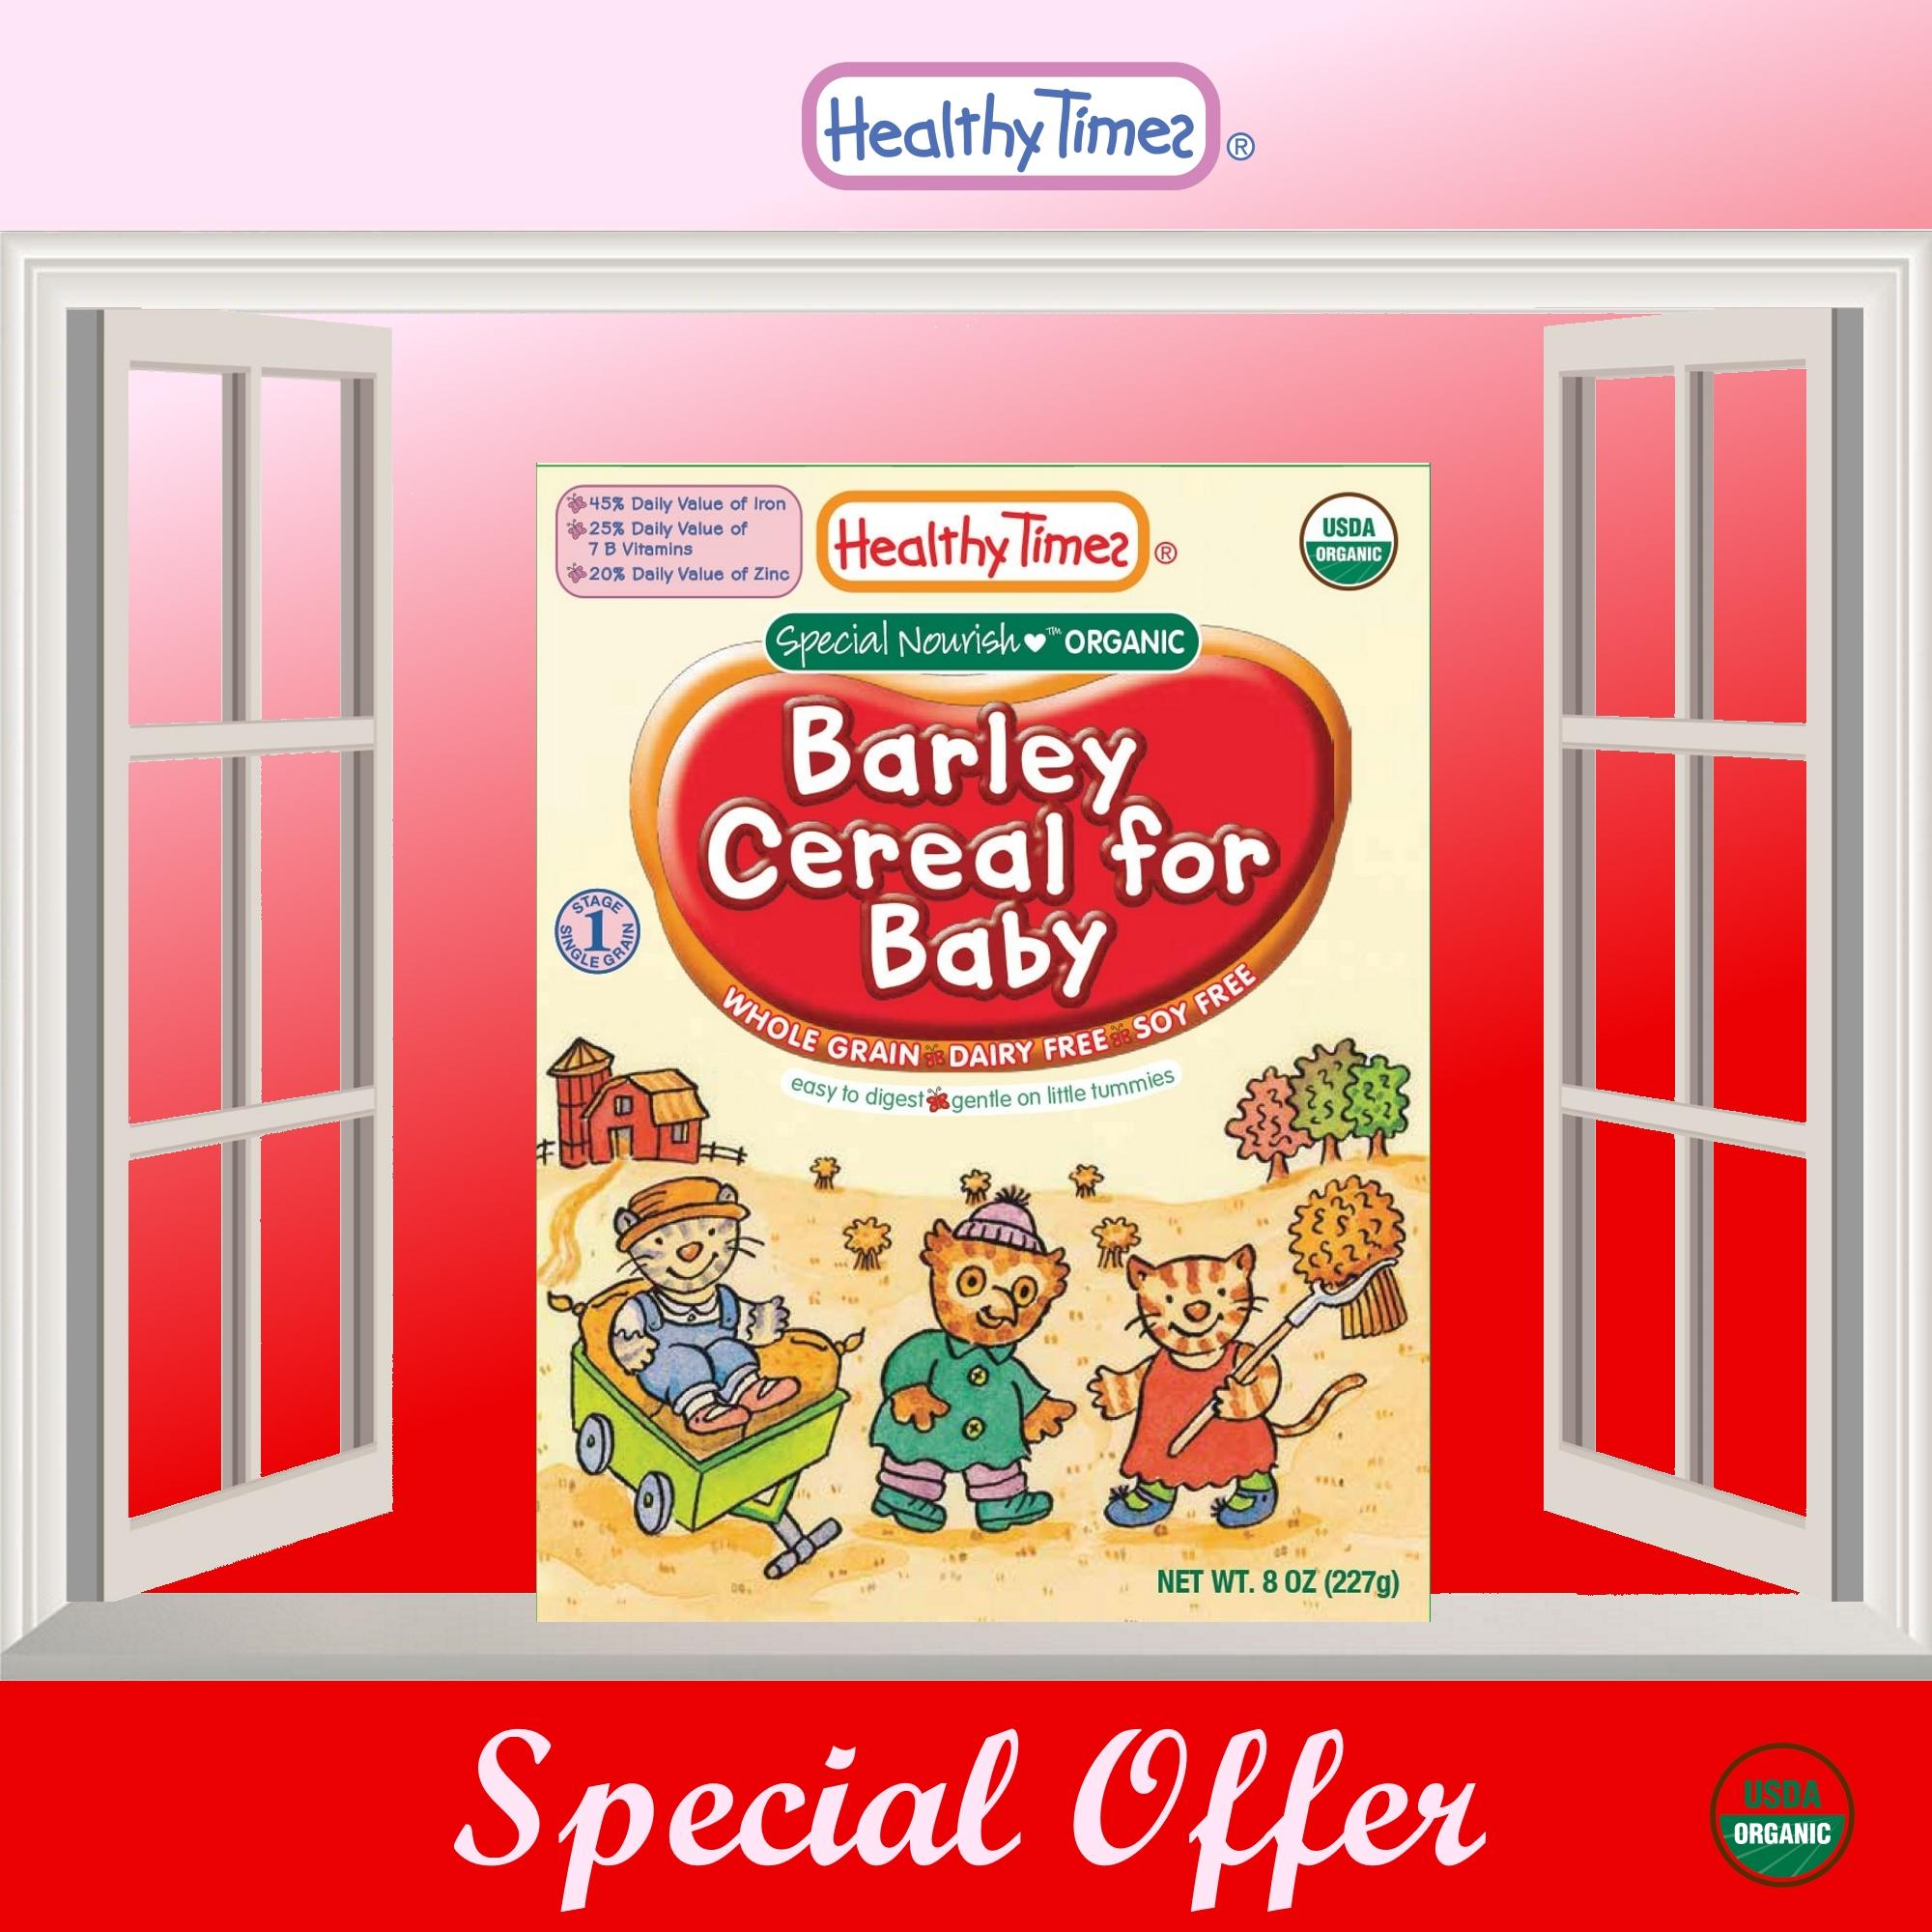 Low Cost Expiry 18 Dec 2018 Without Outer Box Due To Dented Packaging 2 X Organic Barley Cereal For Baby 6 Months